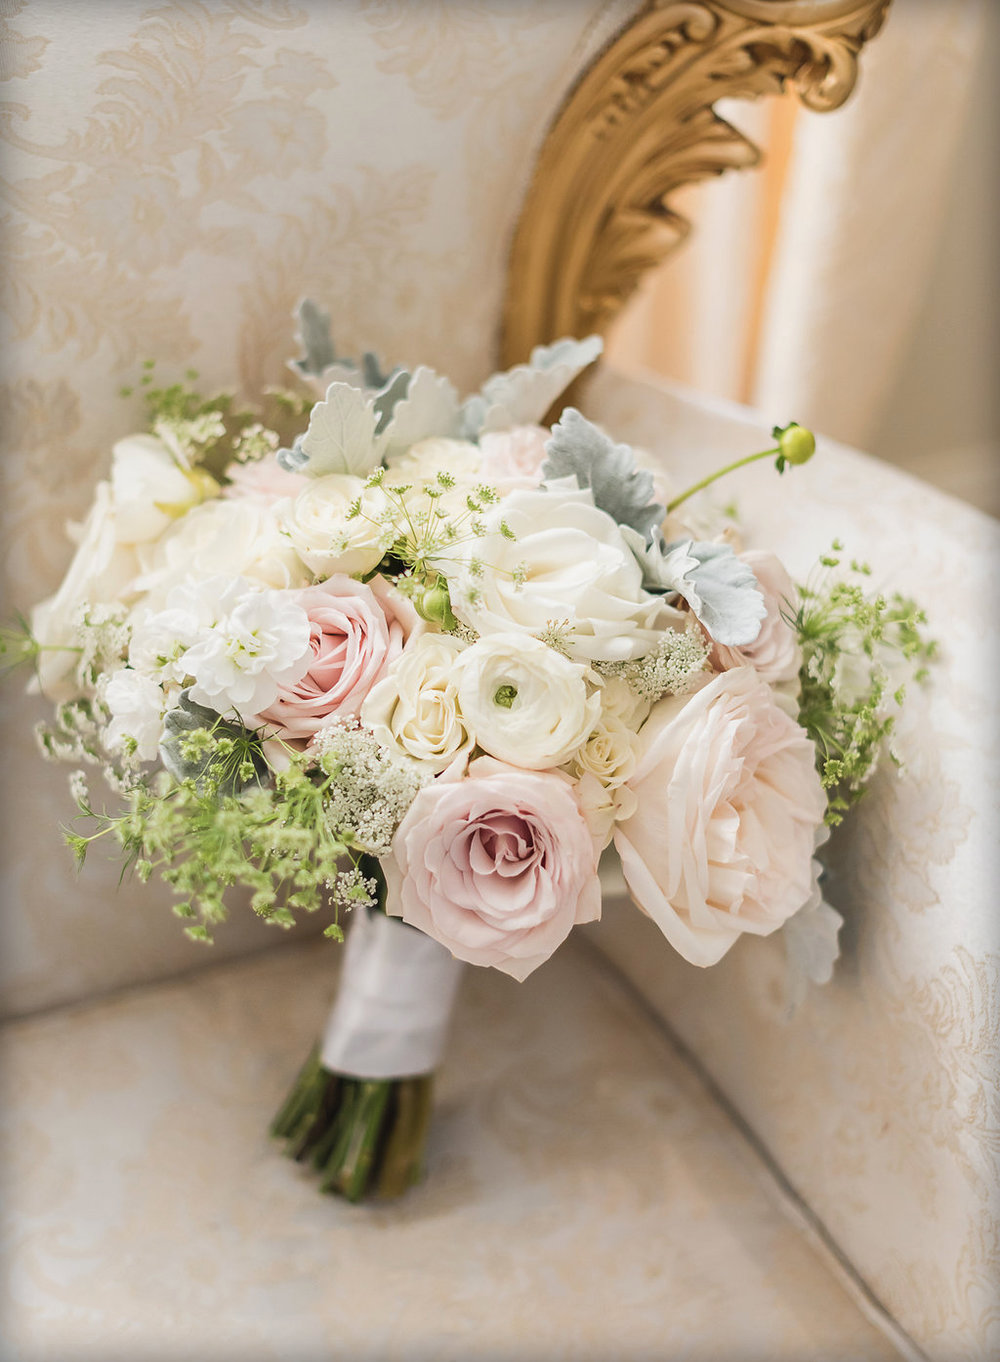 Blush & white bridal bouquet : Jackie Averill Photography